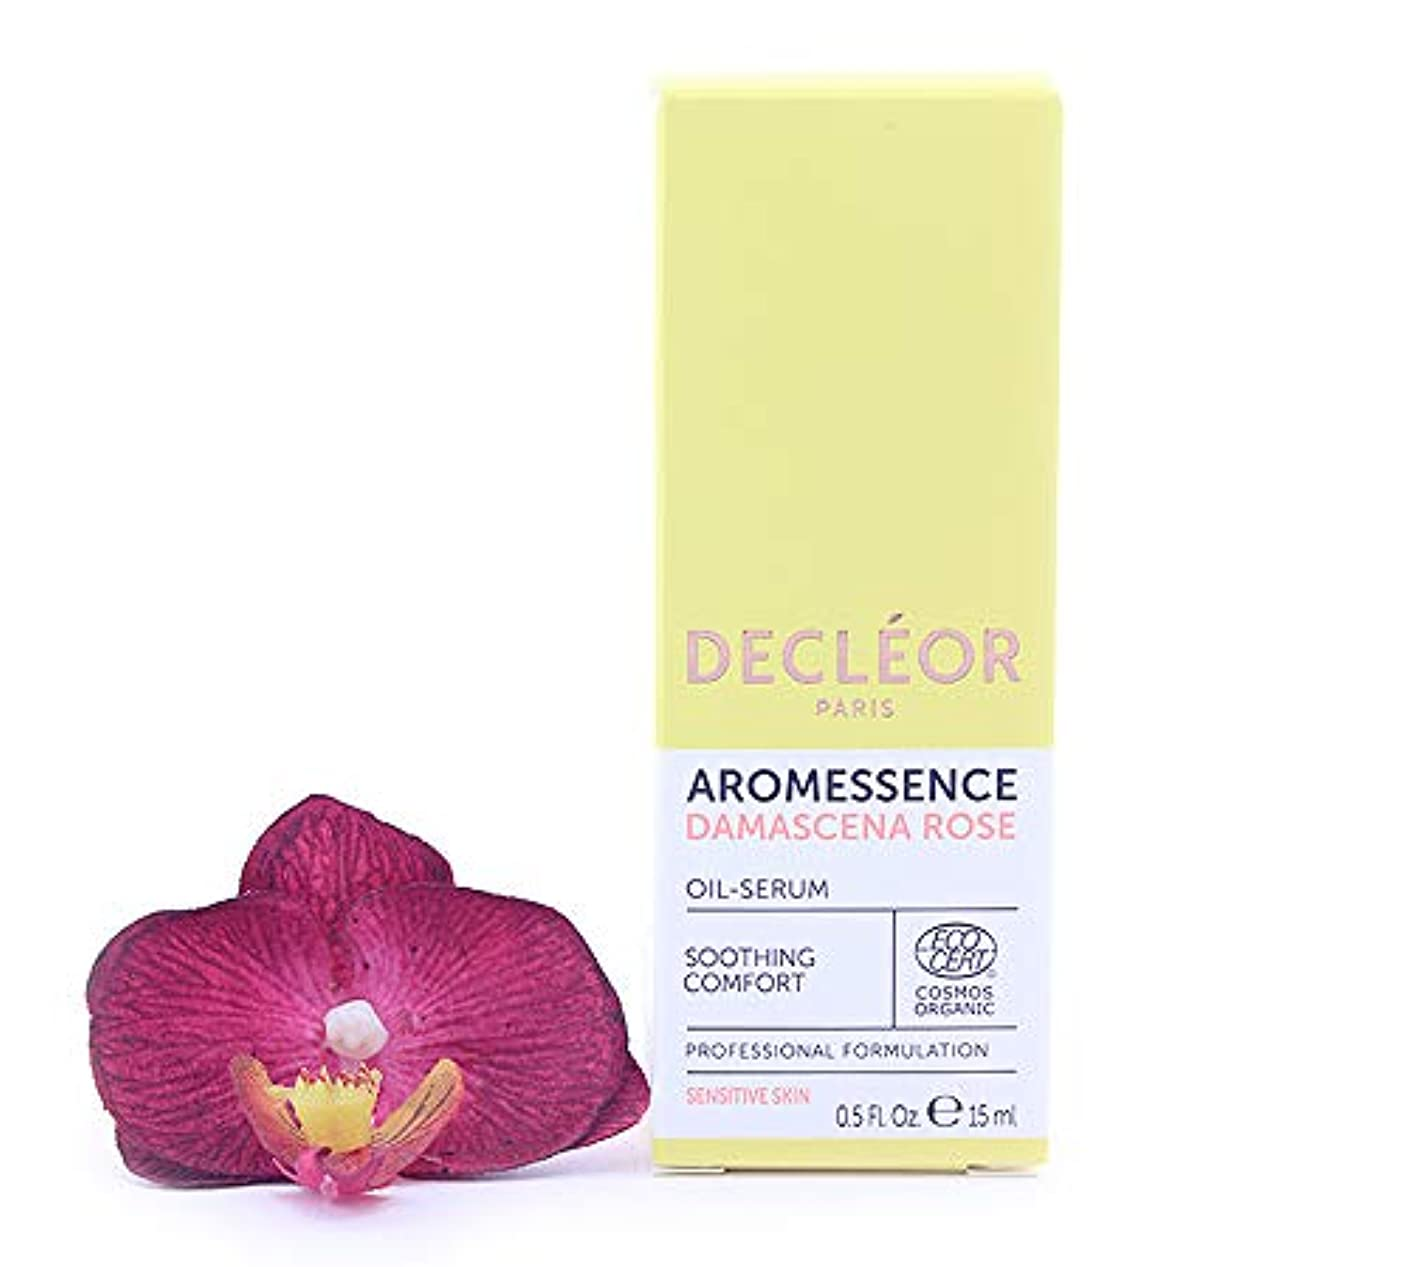 開拓者きれいに騒ぎデクレオール Aromessence Rose D'Orient (Damascena Rose) Soothing Comfort Oil Serum 15ml/0.5oz並行輸入品